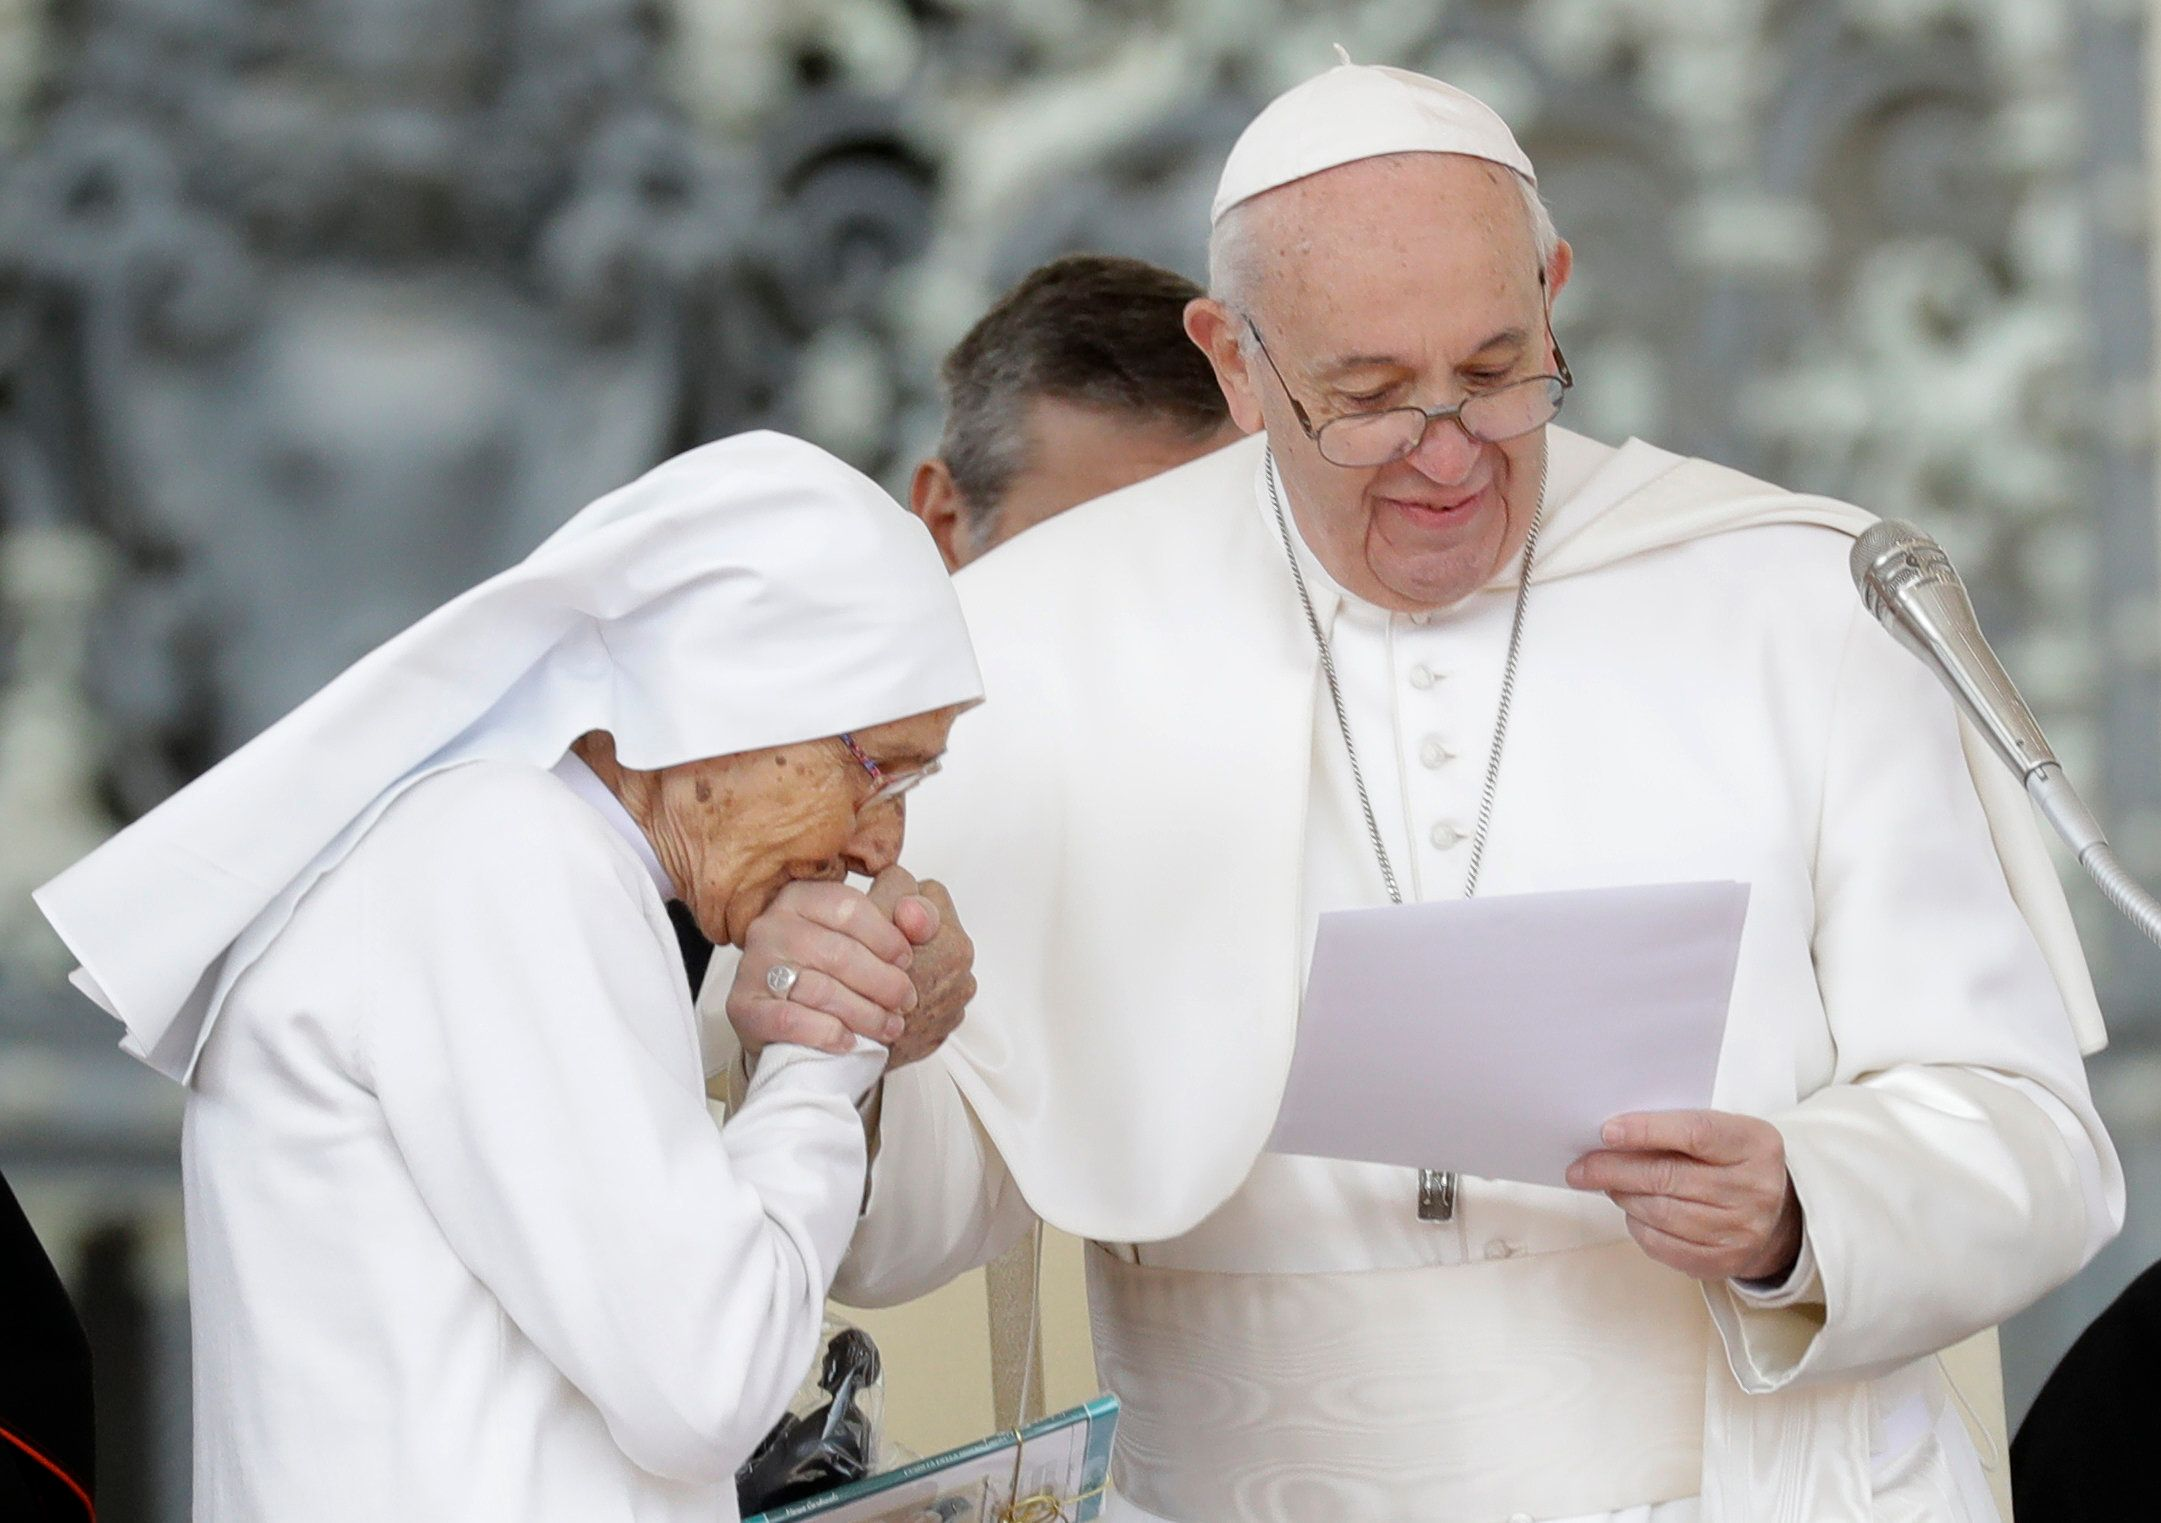 Pope kept pulling away hand 'for fear of spreading germs'